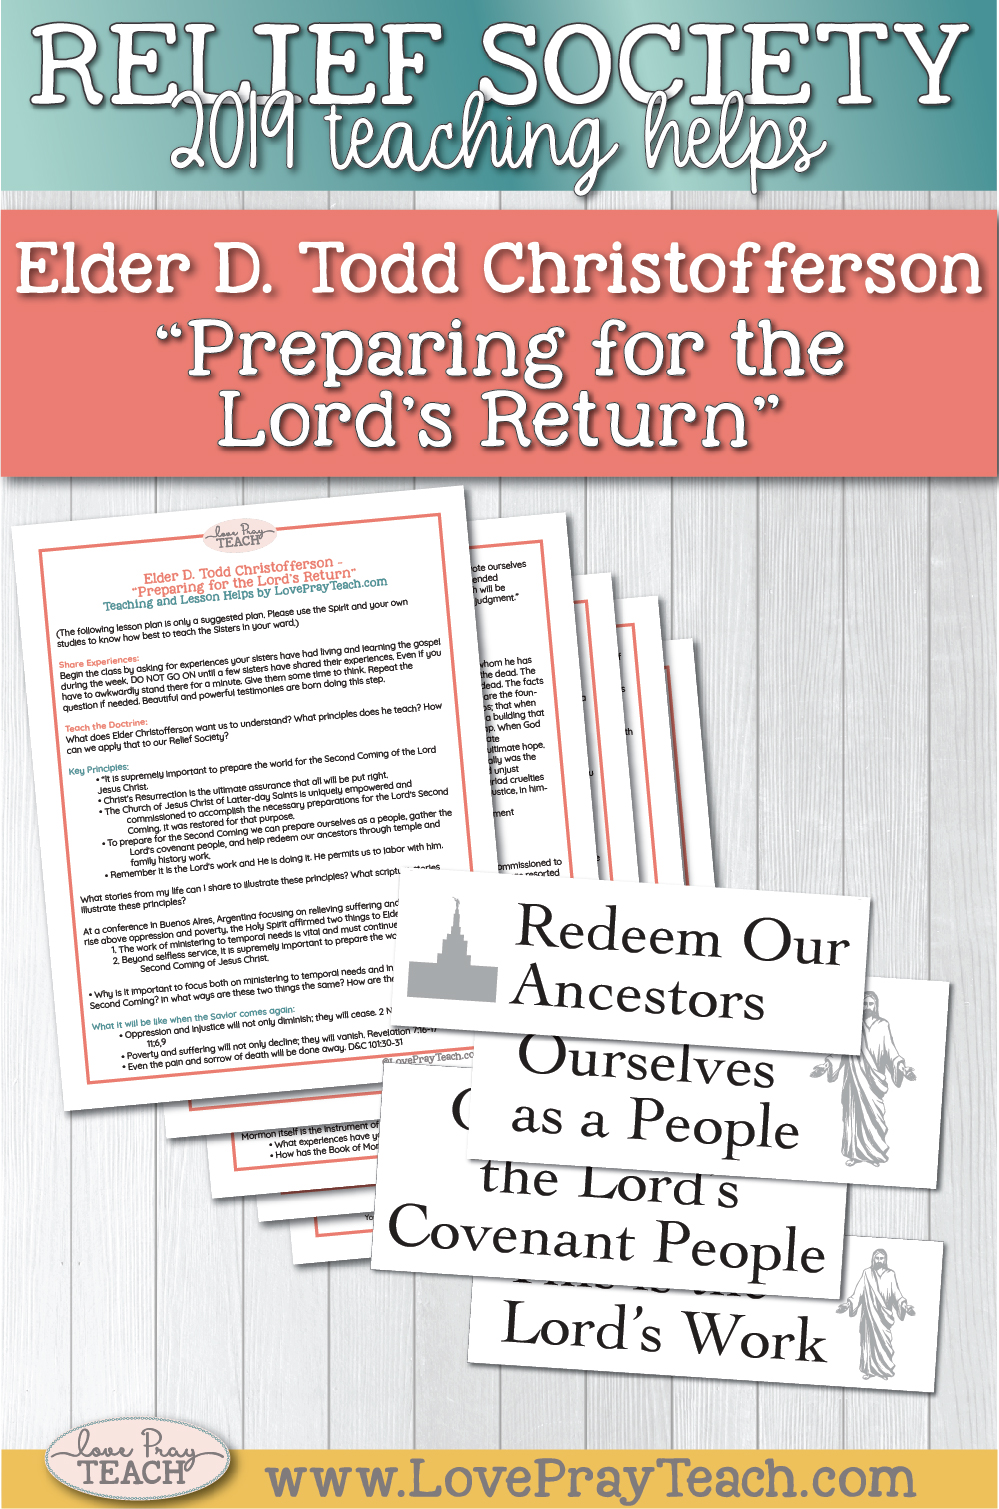 """April 2019 General Conference lesson helps and discussion questions for: D. Todd Christofferson """"Preparing for the Lord's Return"""" Includes teaching packet and board strips for Relief Society www.LovePrayTeach.com"""